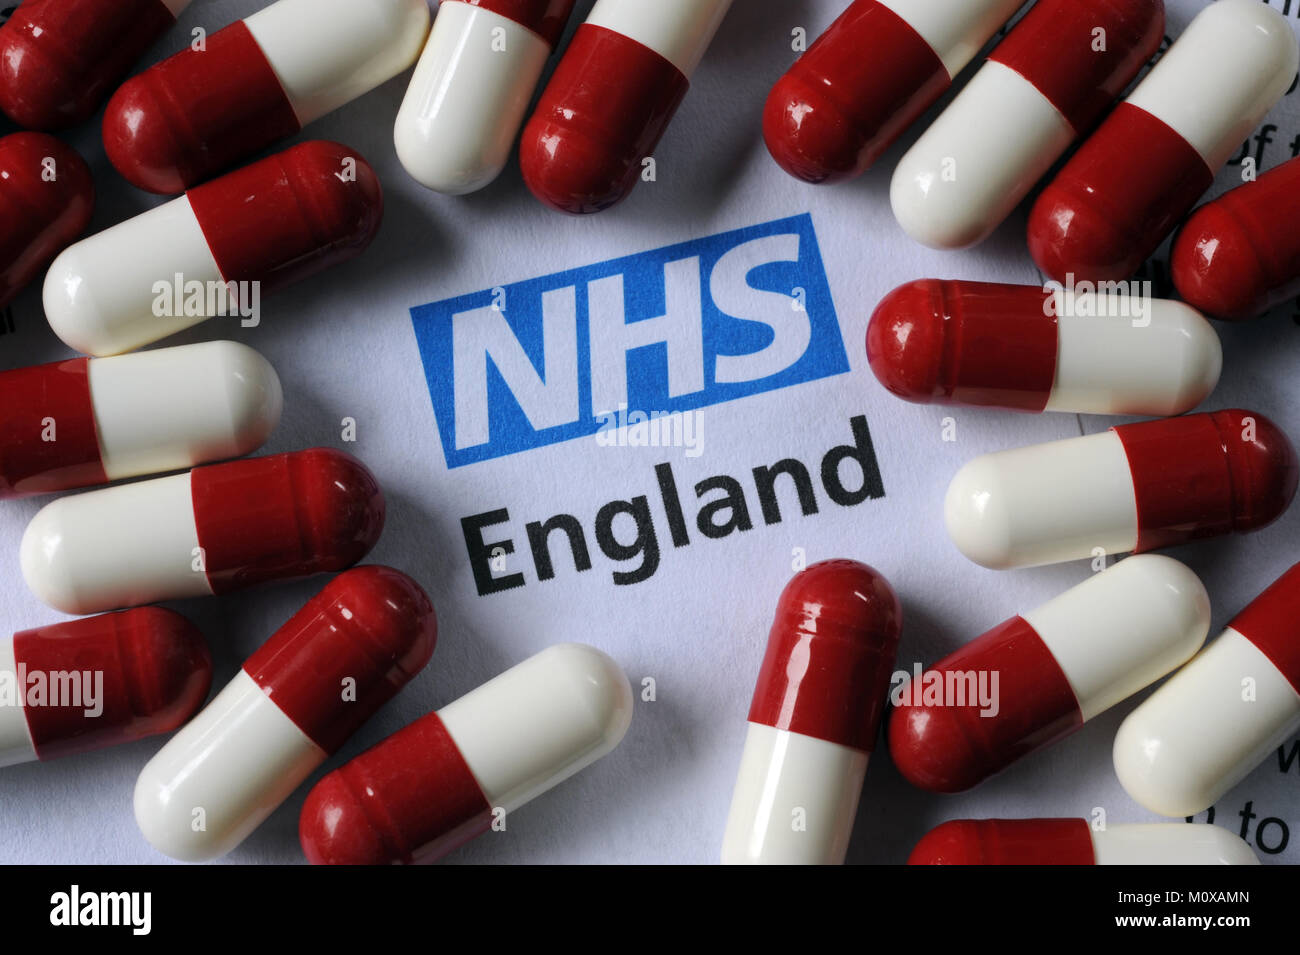 NHS ENGLAND LITERATURE WITH DRUG CAPSULES RE THE HEALTH SERVICE PATIENTS DOCTORS MEDICINE ETC UK - Stock Image